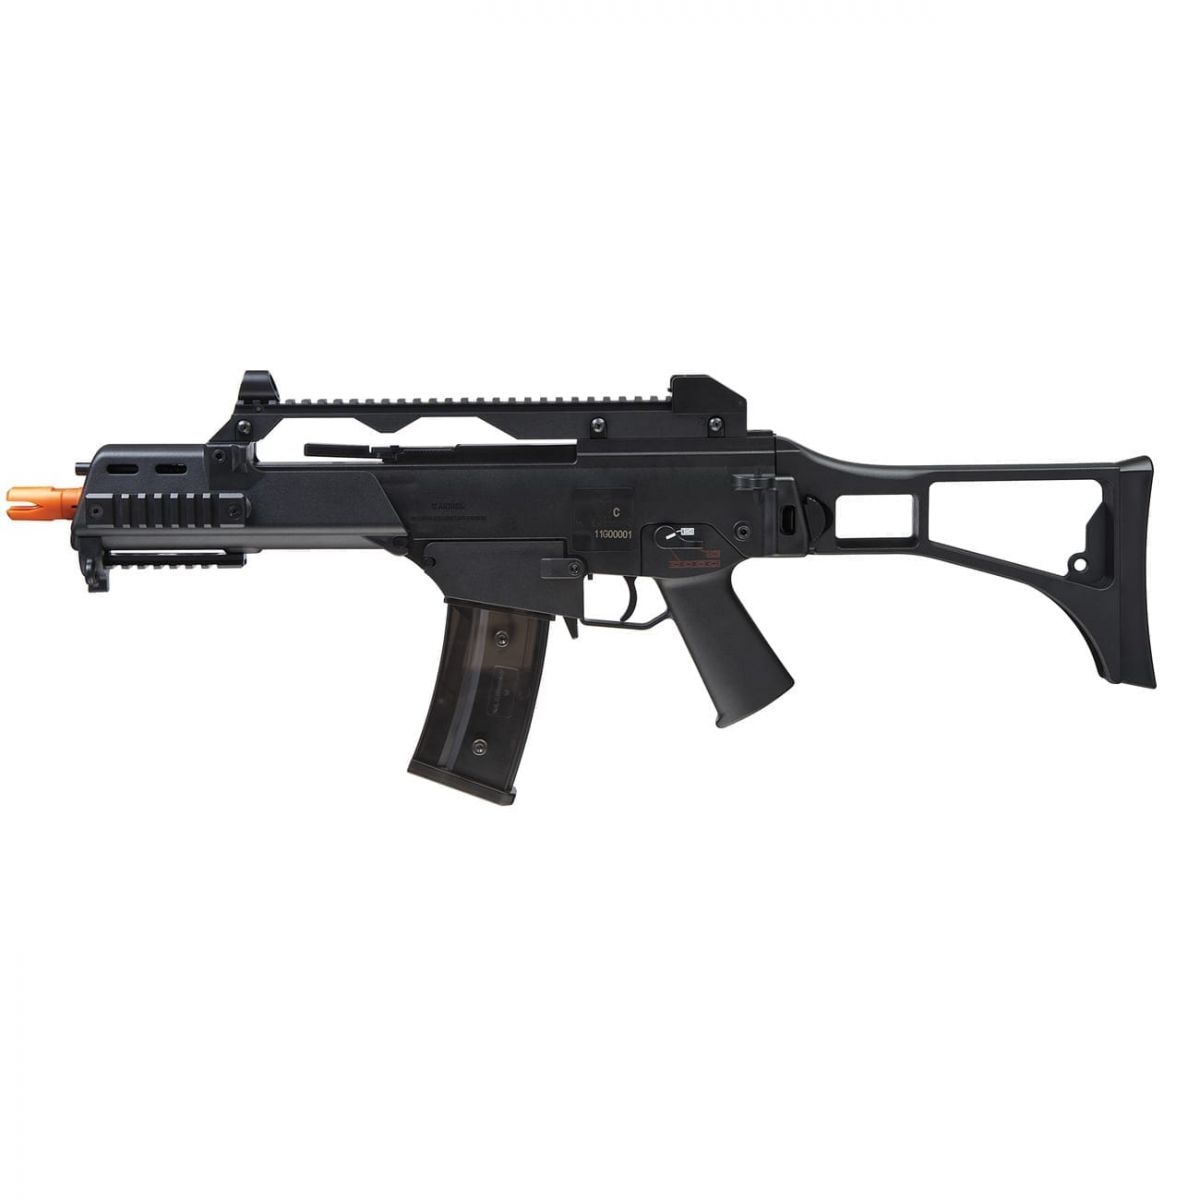 H&K G36C Competition Series Airsoft Aeg Rifle by Umarex